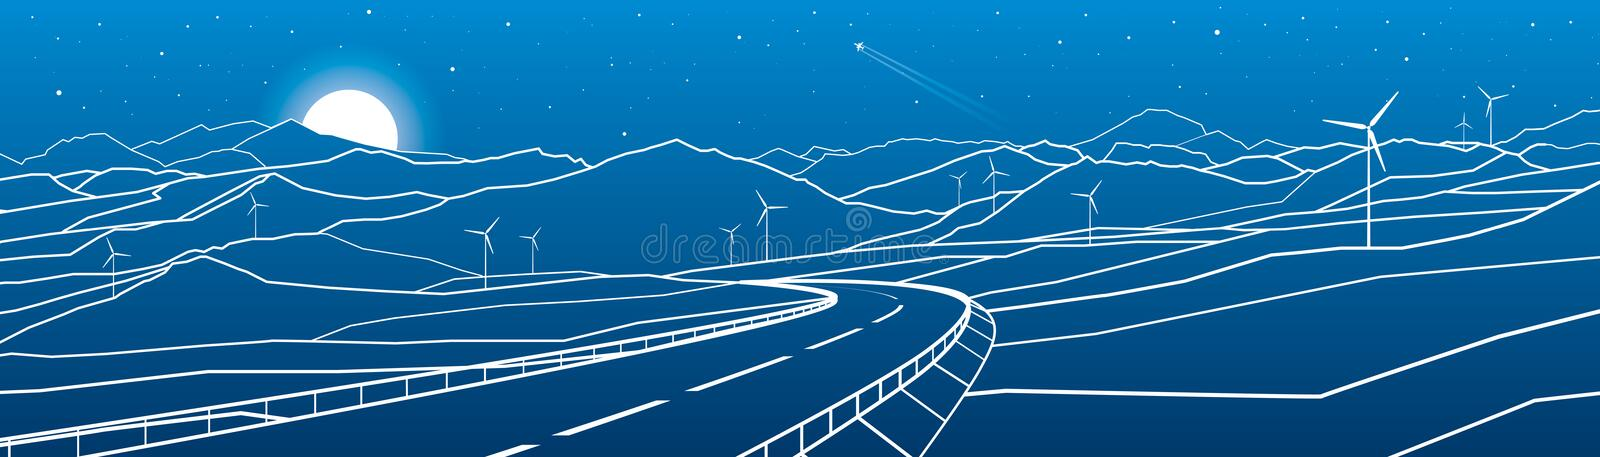 Highway in the mountains. Sunset behind the rocks. Night scene. White lines on blue background. Windmills power. Vector design art vector illustration